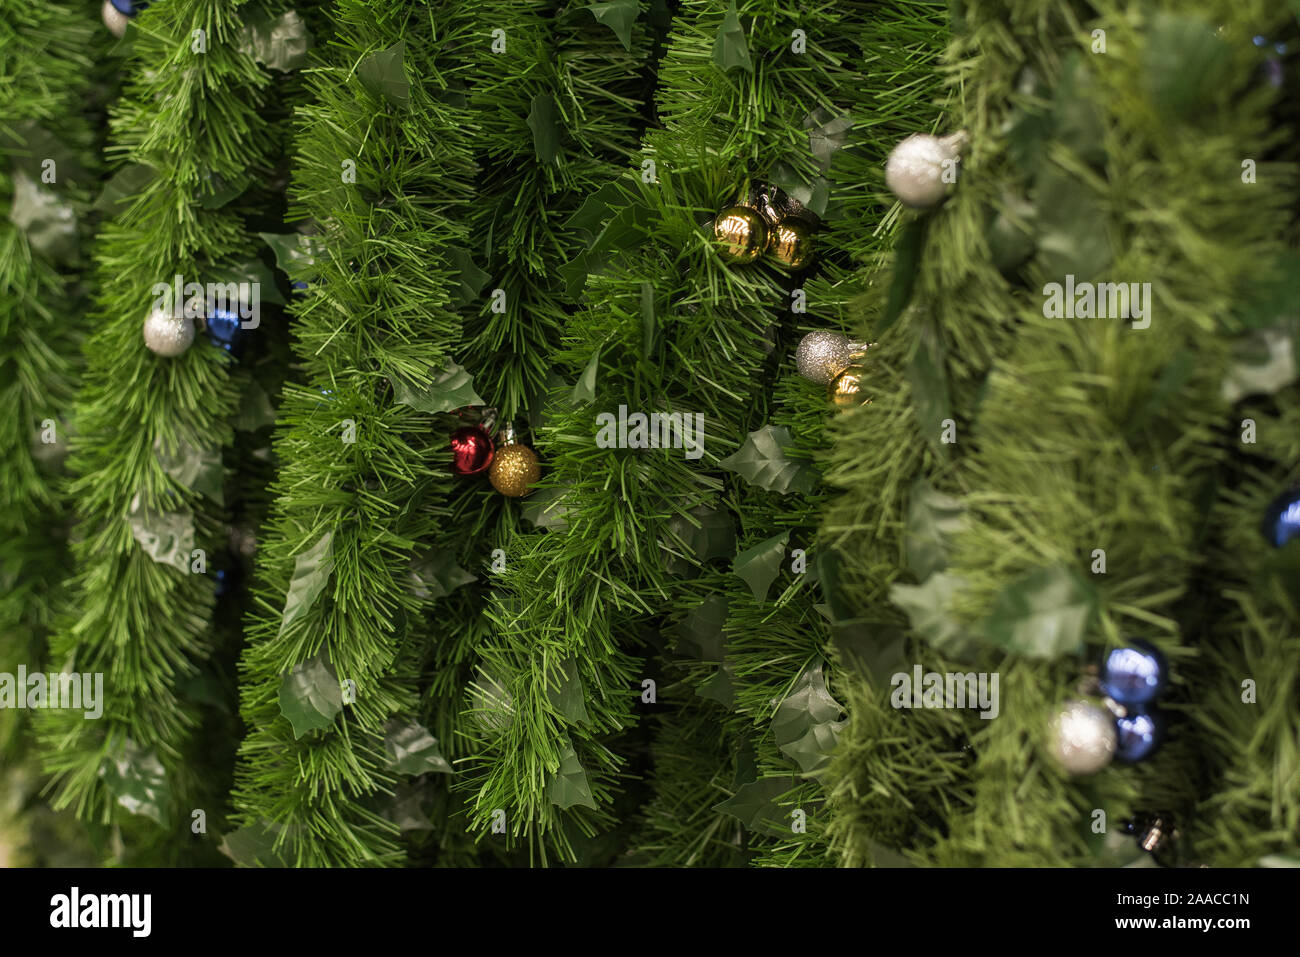 Sale Of Green Garlands In The Form Of Christmas Tree Branches In A Store Green Tinsel Is Hanging On The Shelves Of A Shop Window Stock Photo Alamy